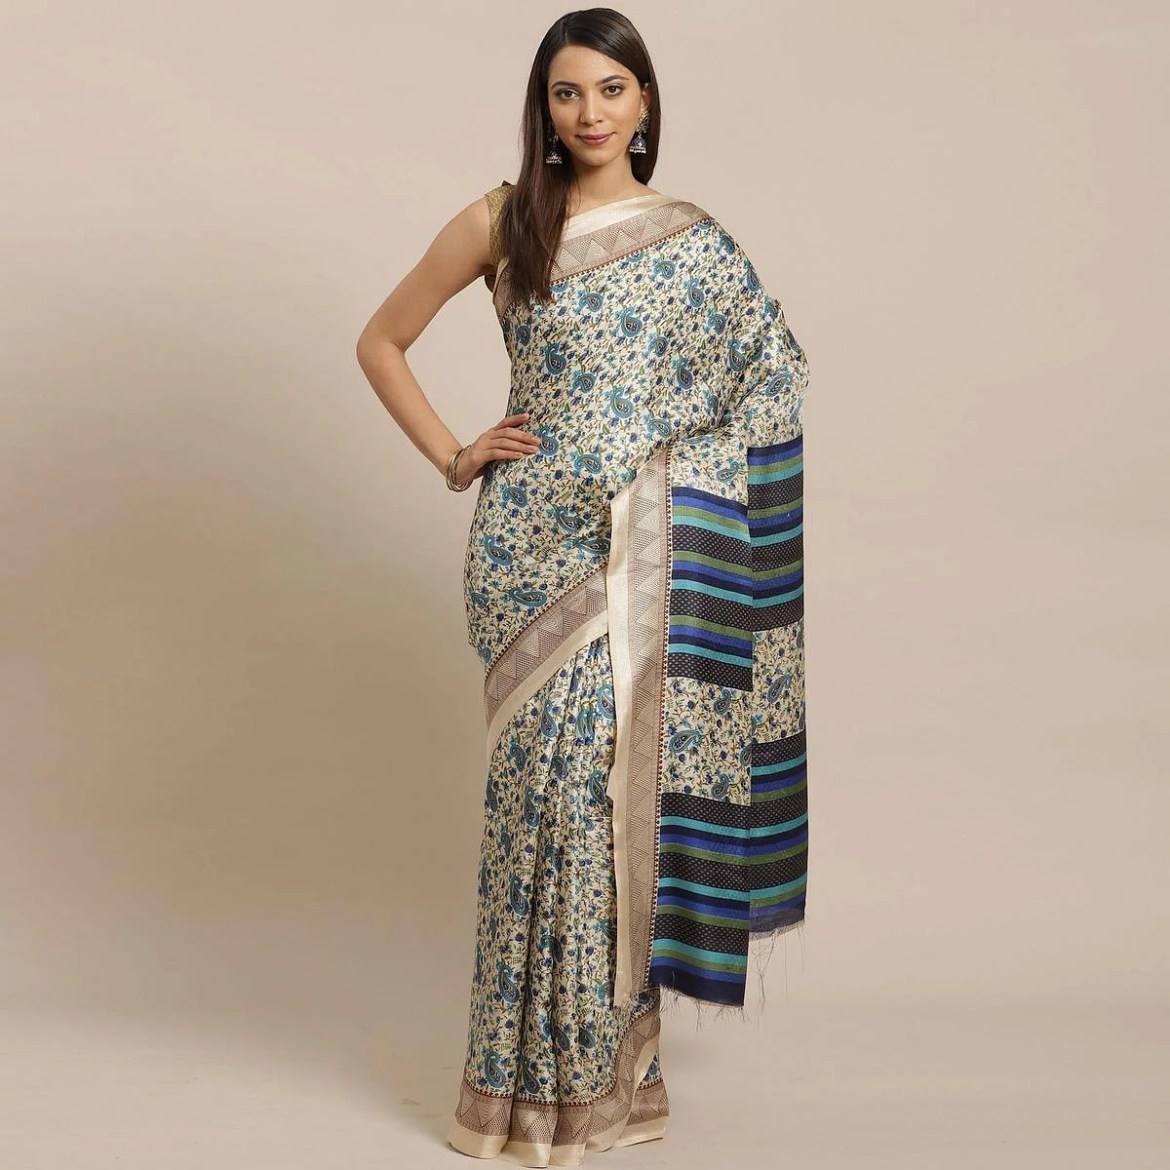 Engrossing Beige - Blue Colored Casual Wear Printed Silk blend Saree